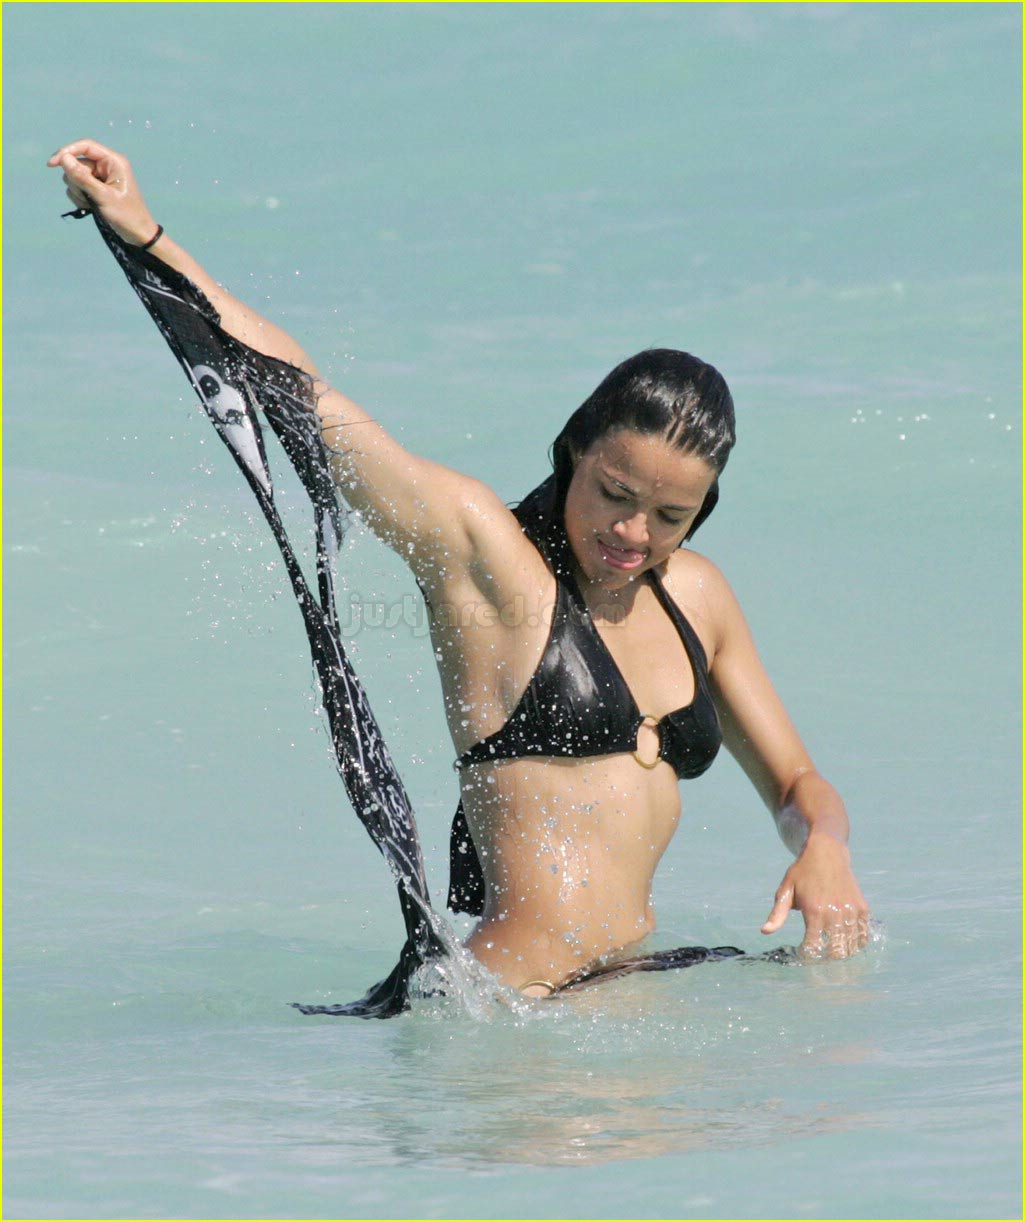 Michelle Rodriguez Shoves Seaweed Down Her Shorts: Photo